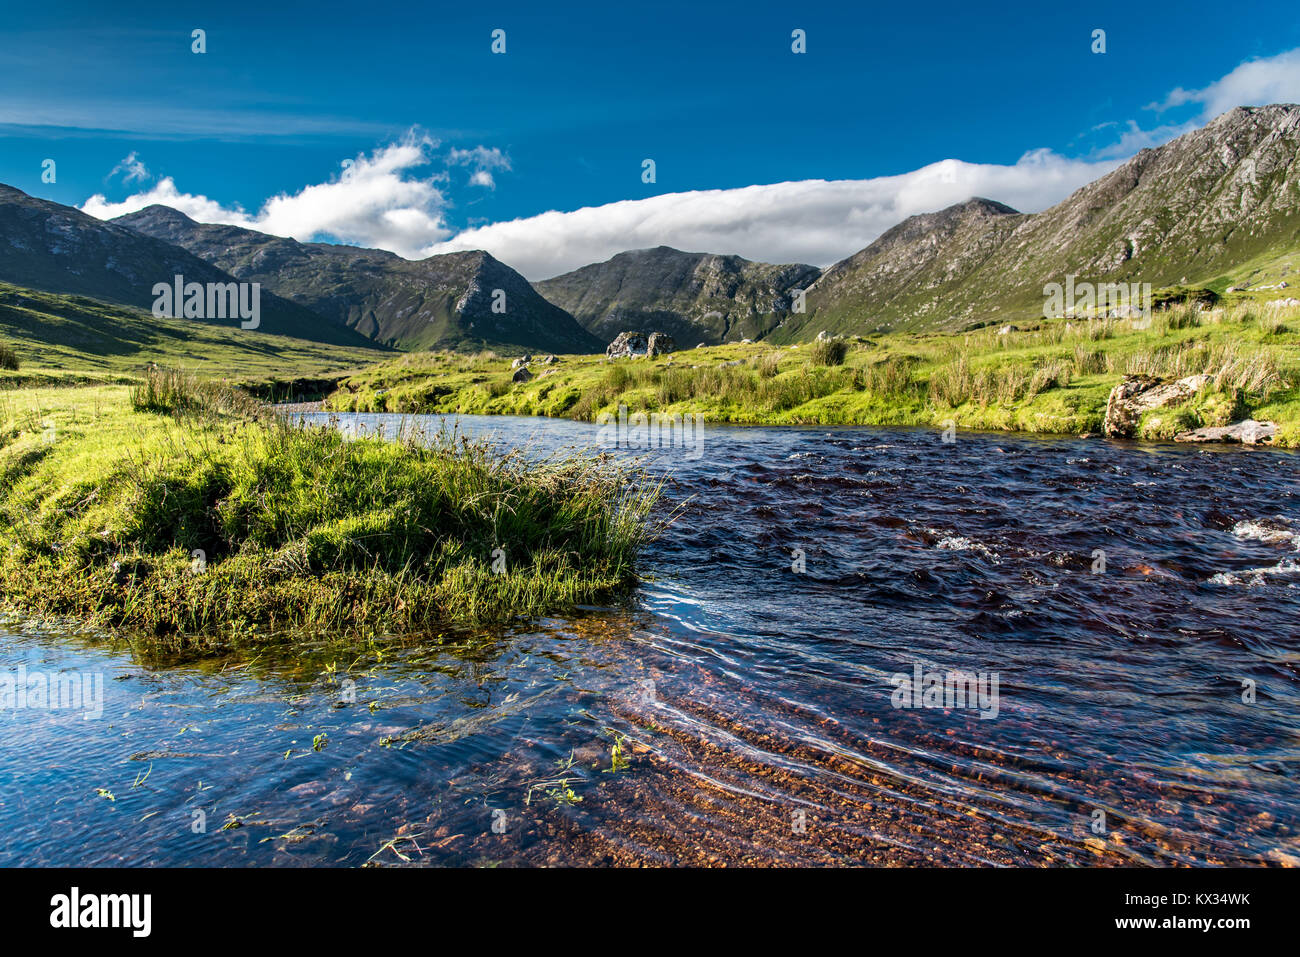 Connemara landscape in Ireland: a river flows amid the meadows in front of the majestic Twelve Bens mountains - Stock Image